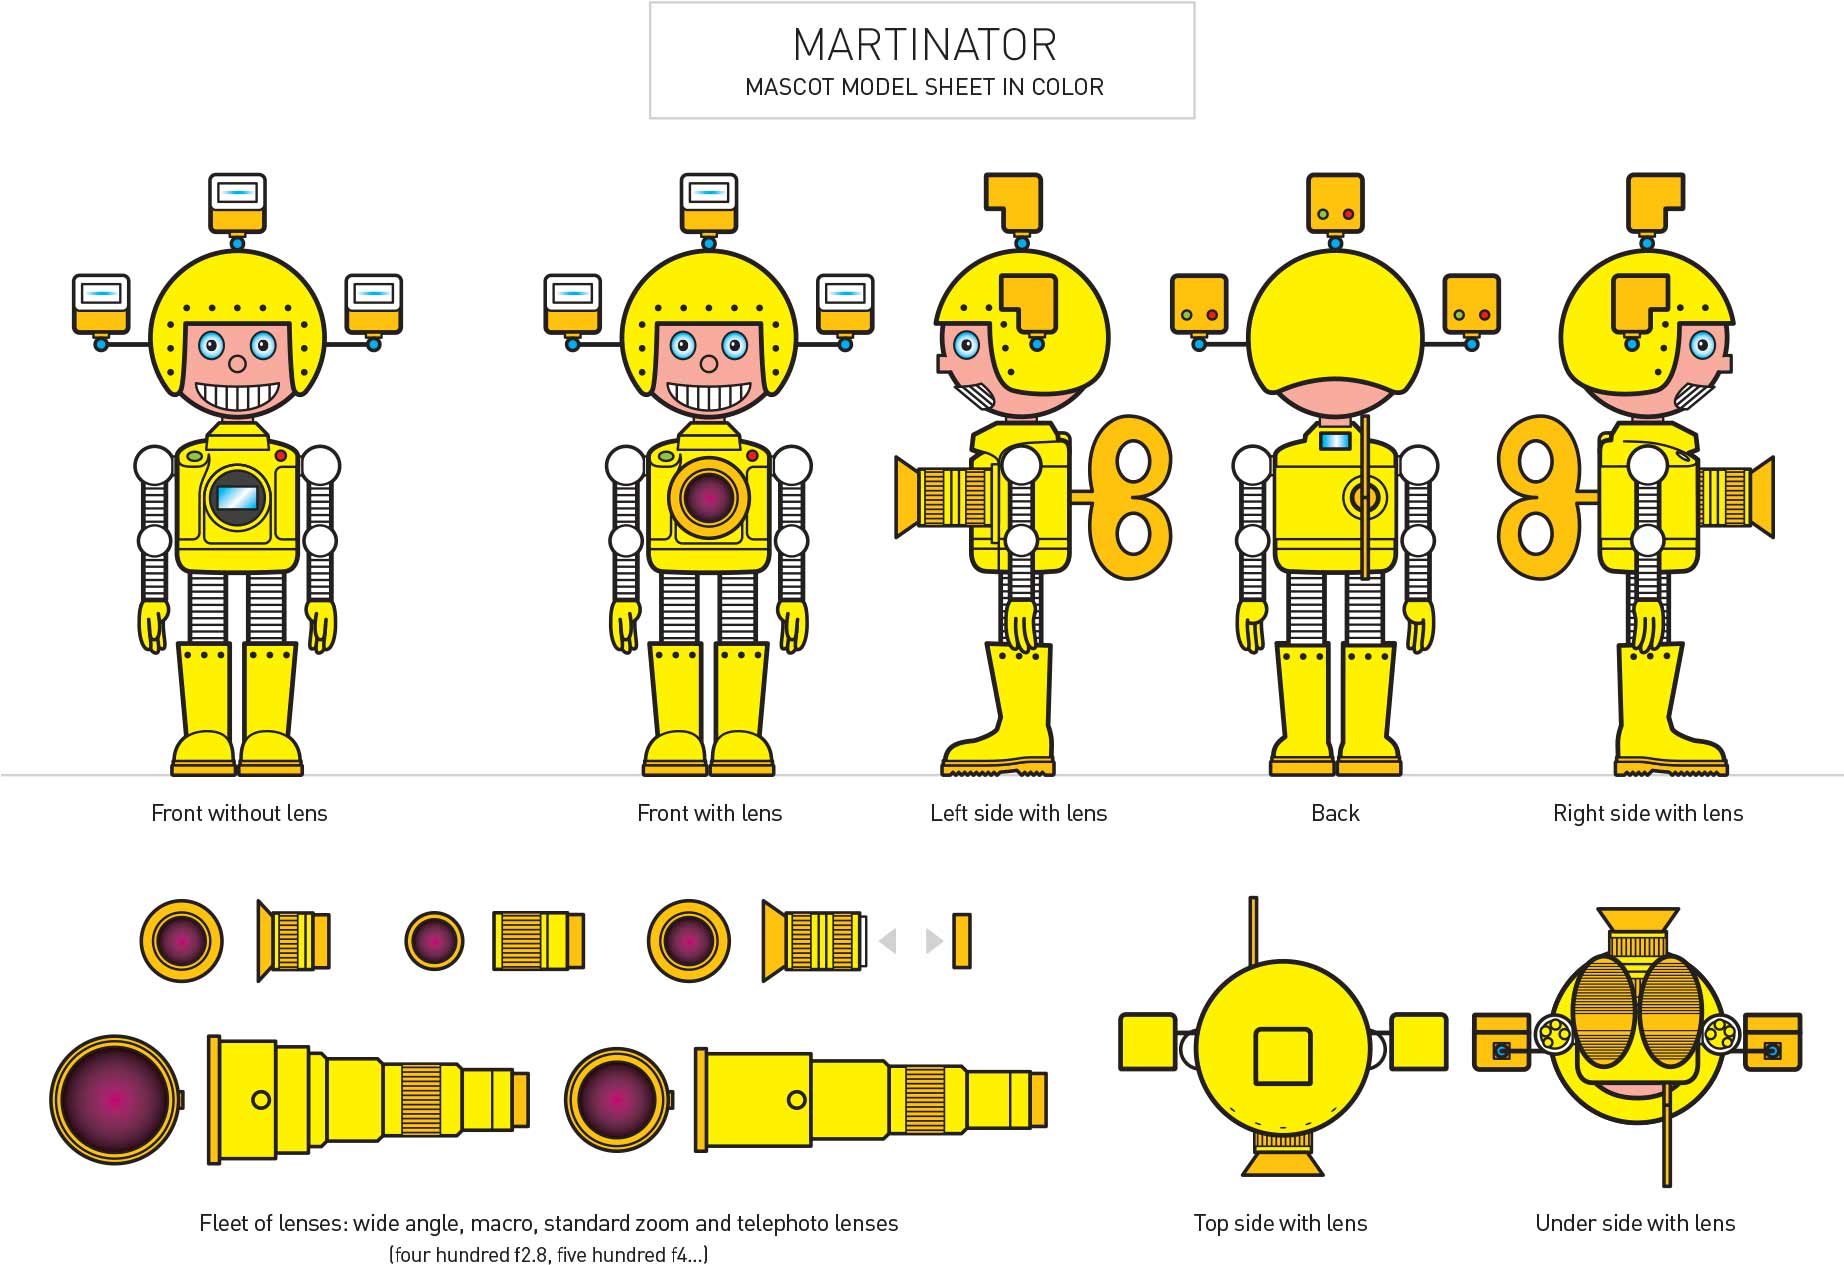 Mascot model sheet in color (body)